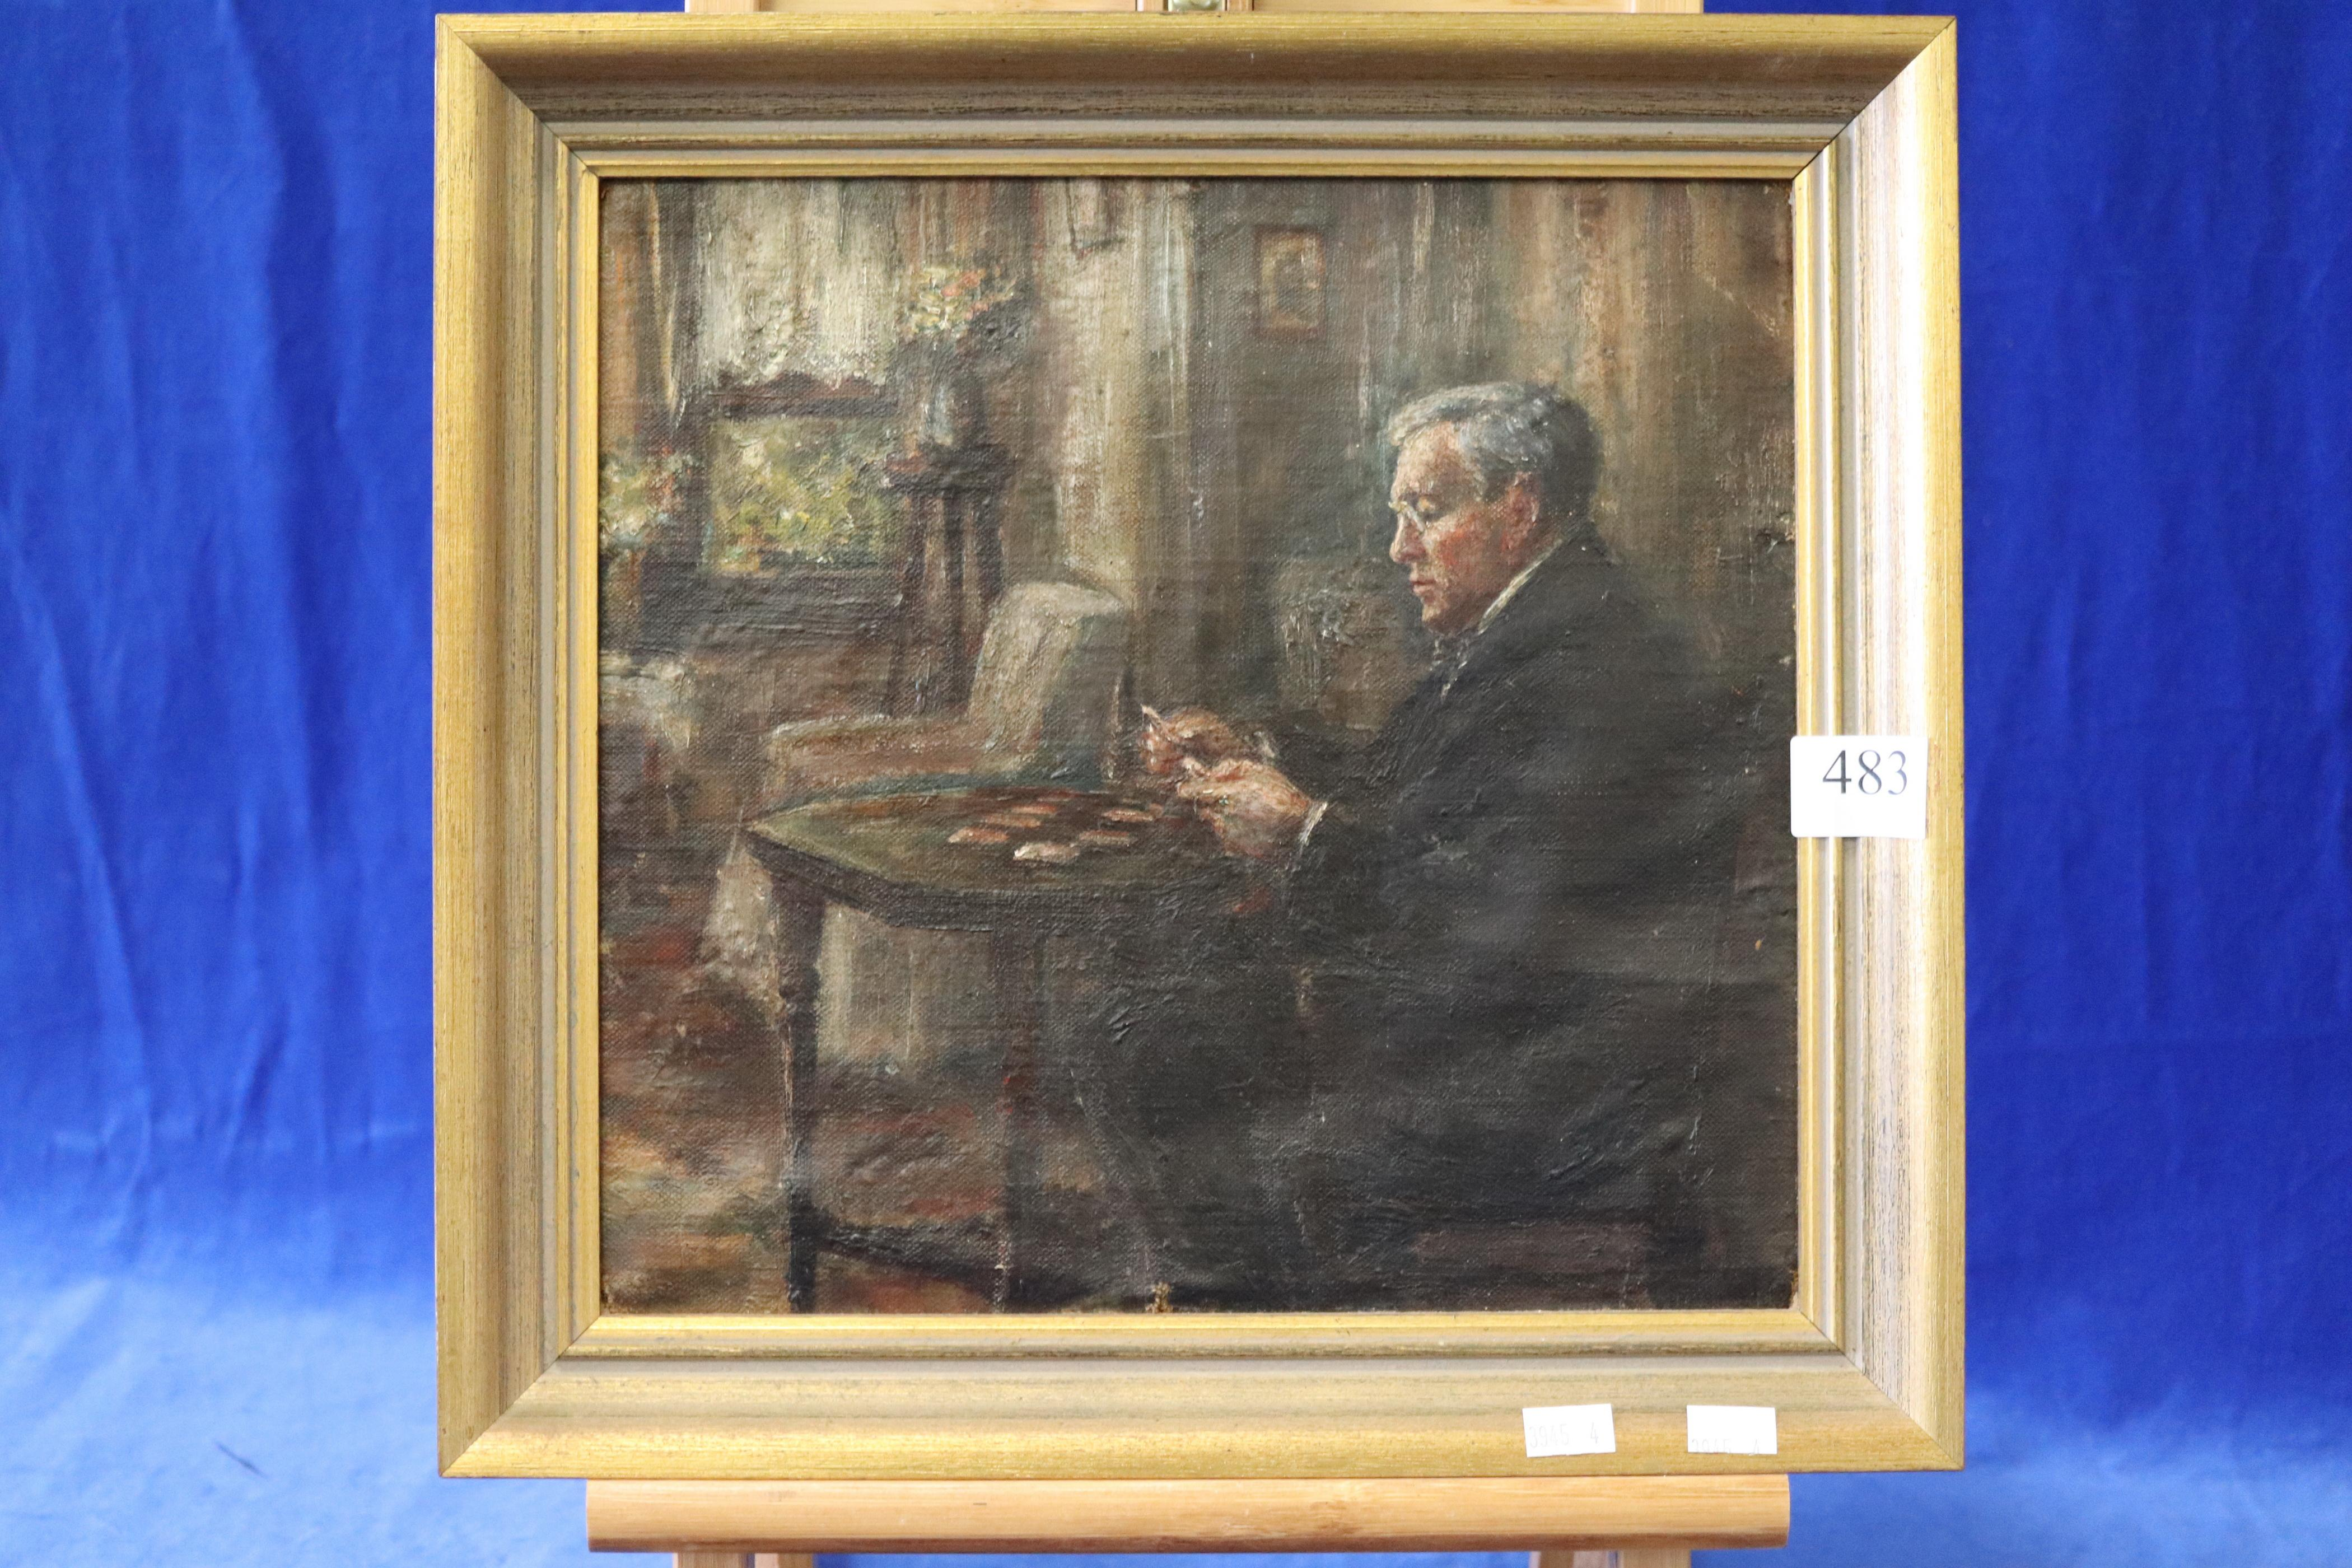 ARTIST UNKNOWN, (ATTRIBUTED TO JOHN LONGSTAFF (SEE REVERSE)) MAN PLAYING PATIENCE, OIL ON CANVAS, MEASURES 28CM X 29CM